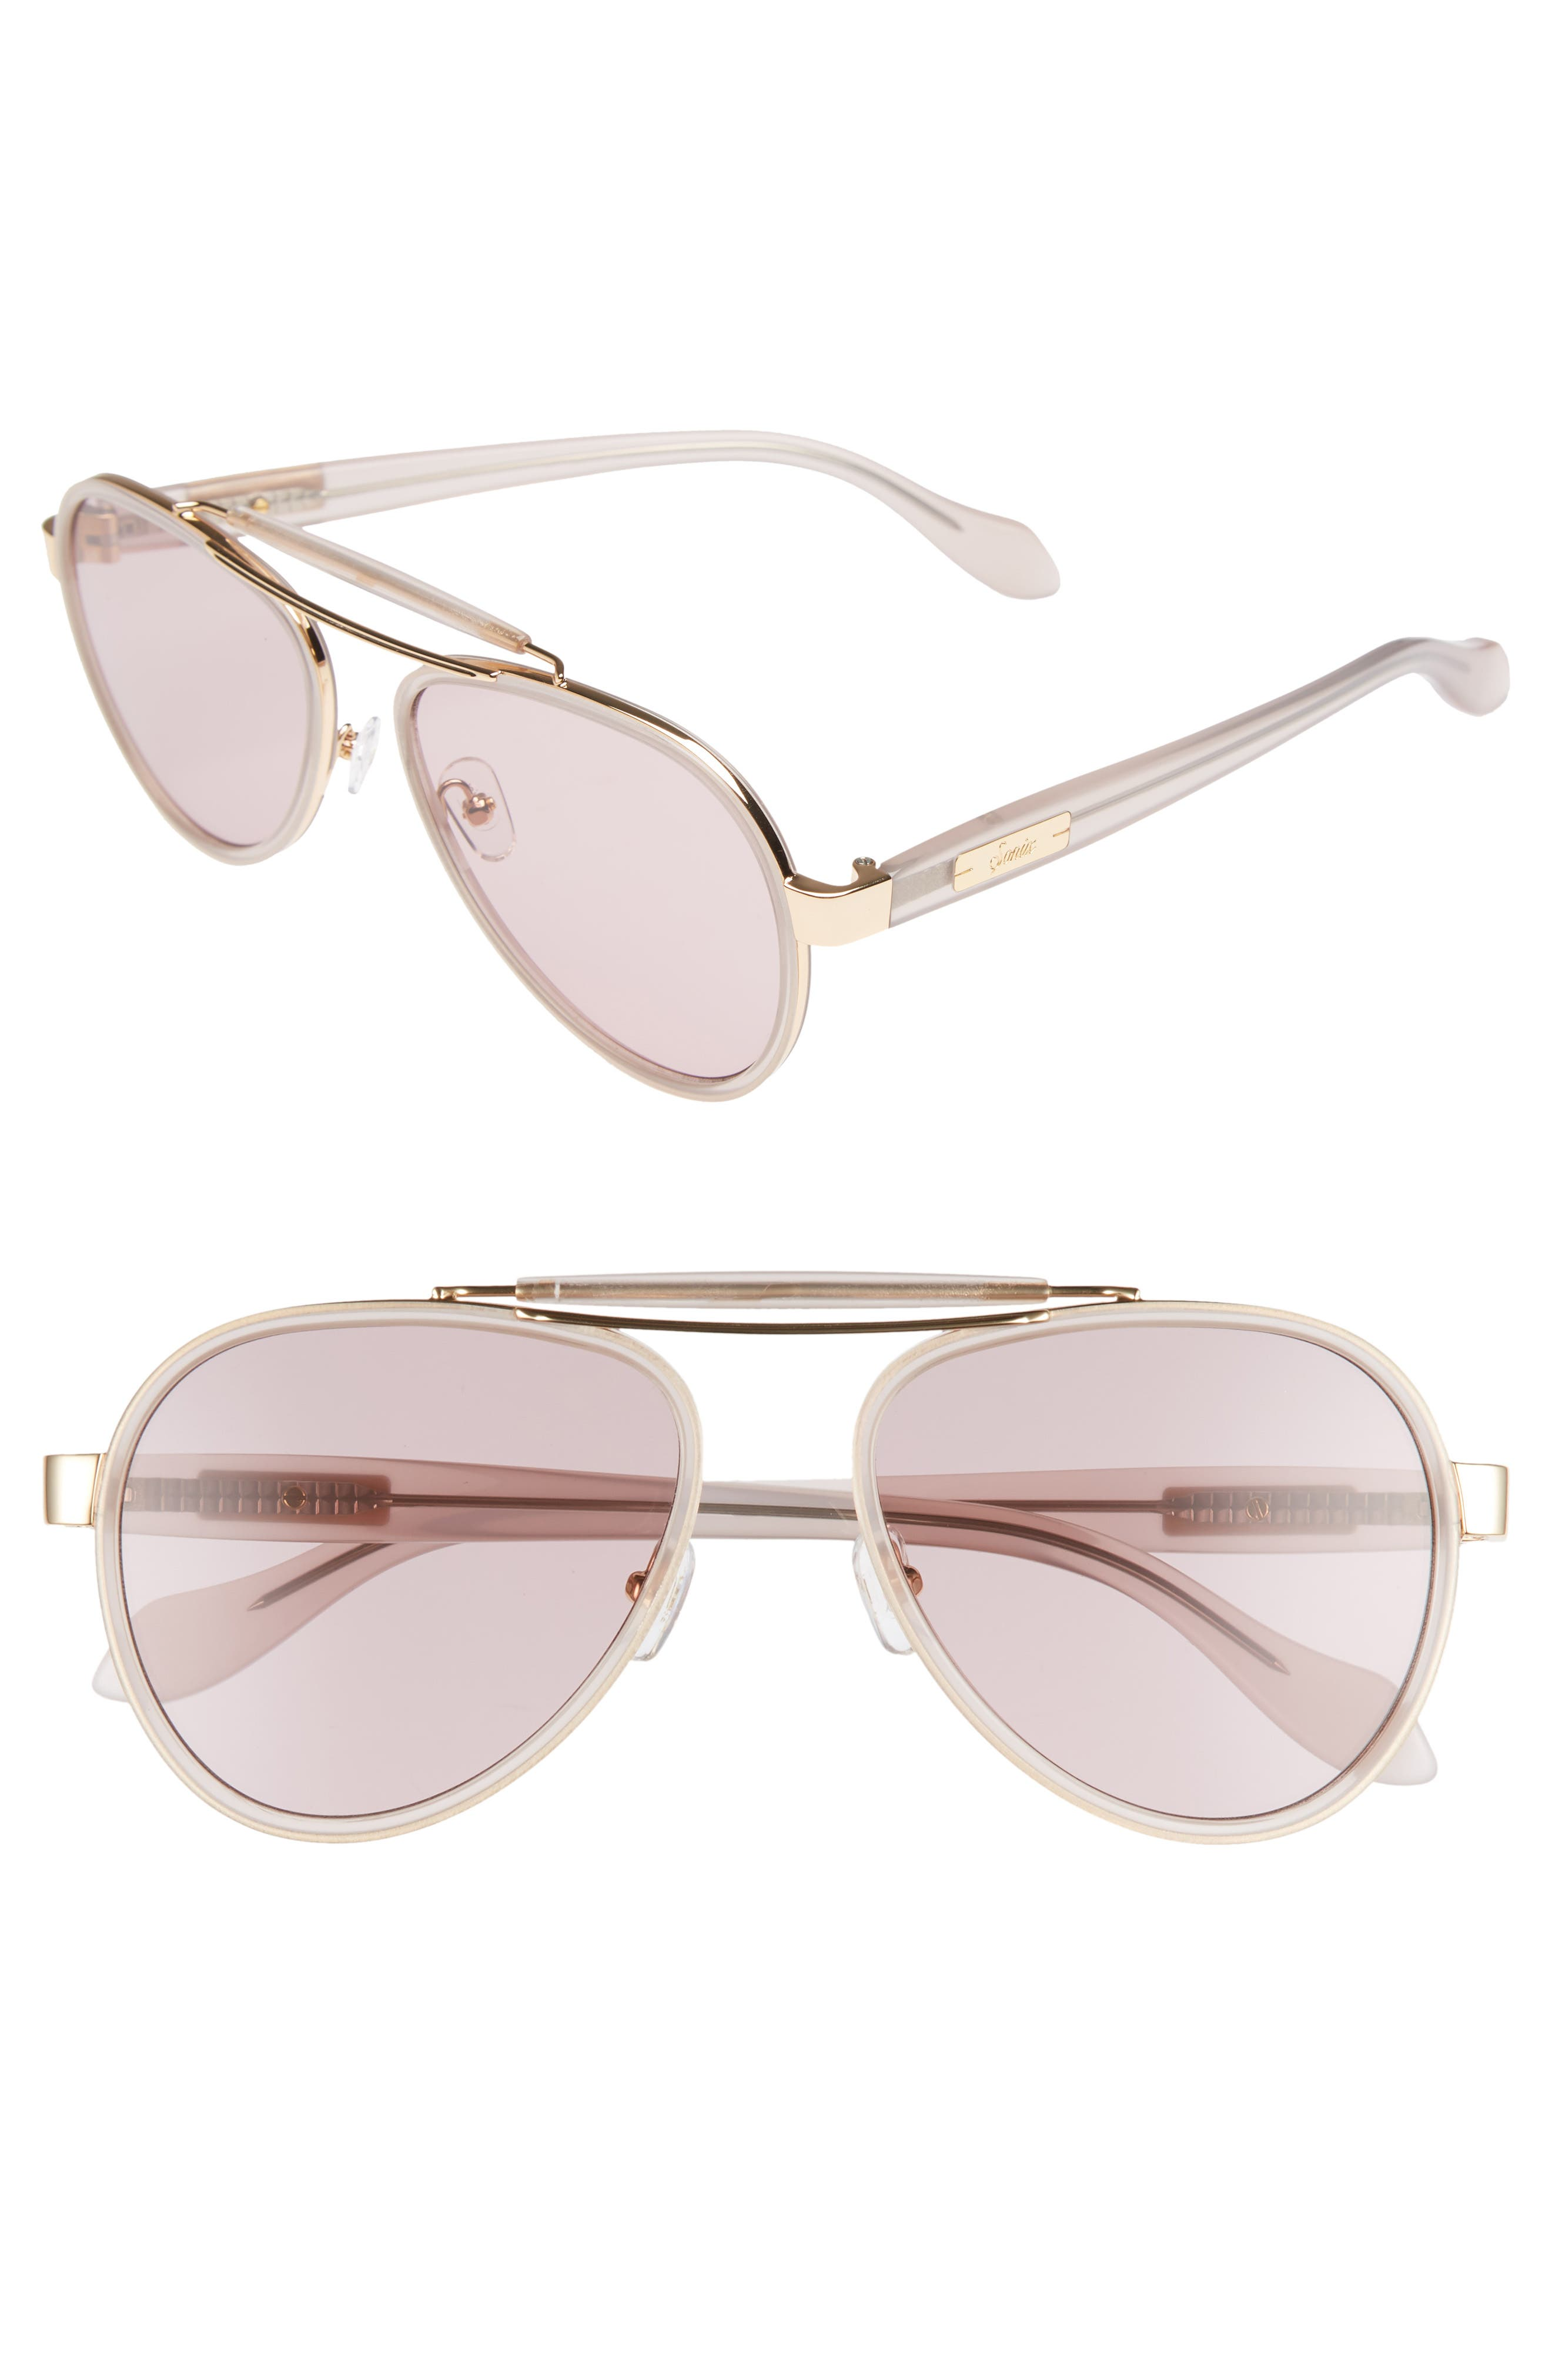 PABLO 58MM AVIATOR SUNGLASSES - LAVENDER/ LAVENDER SOLID